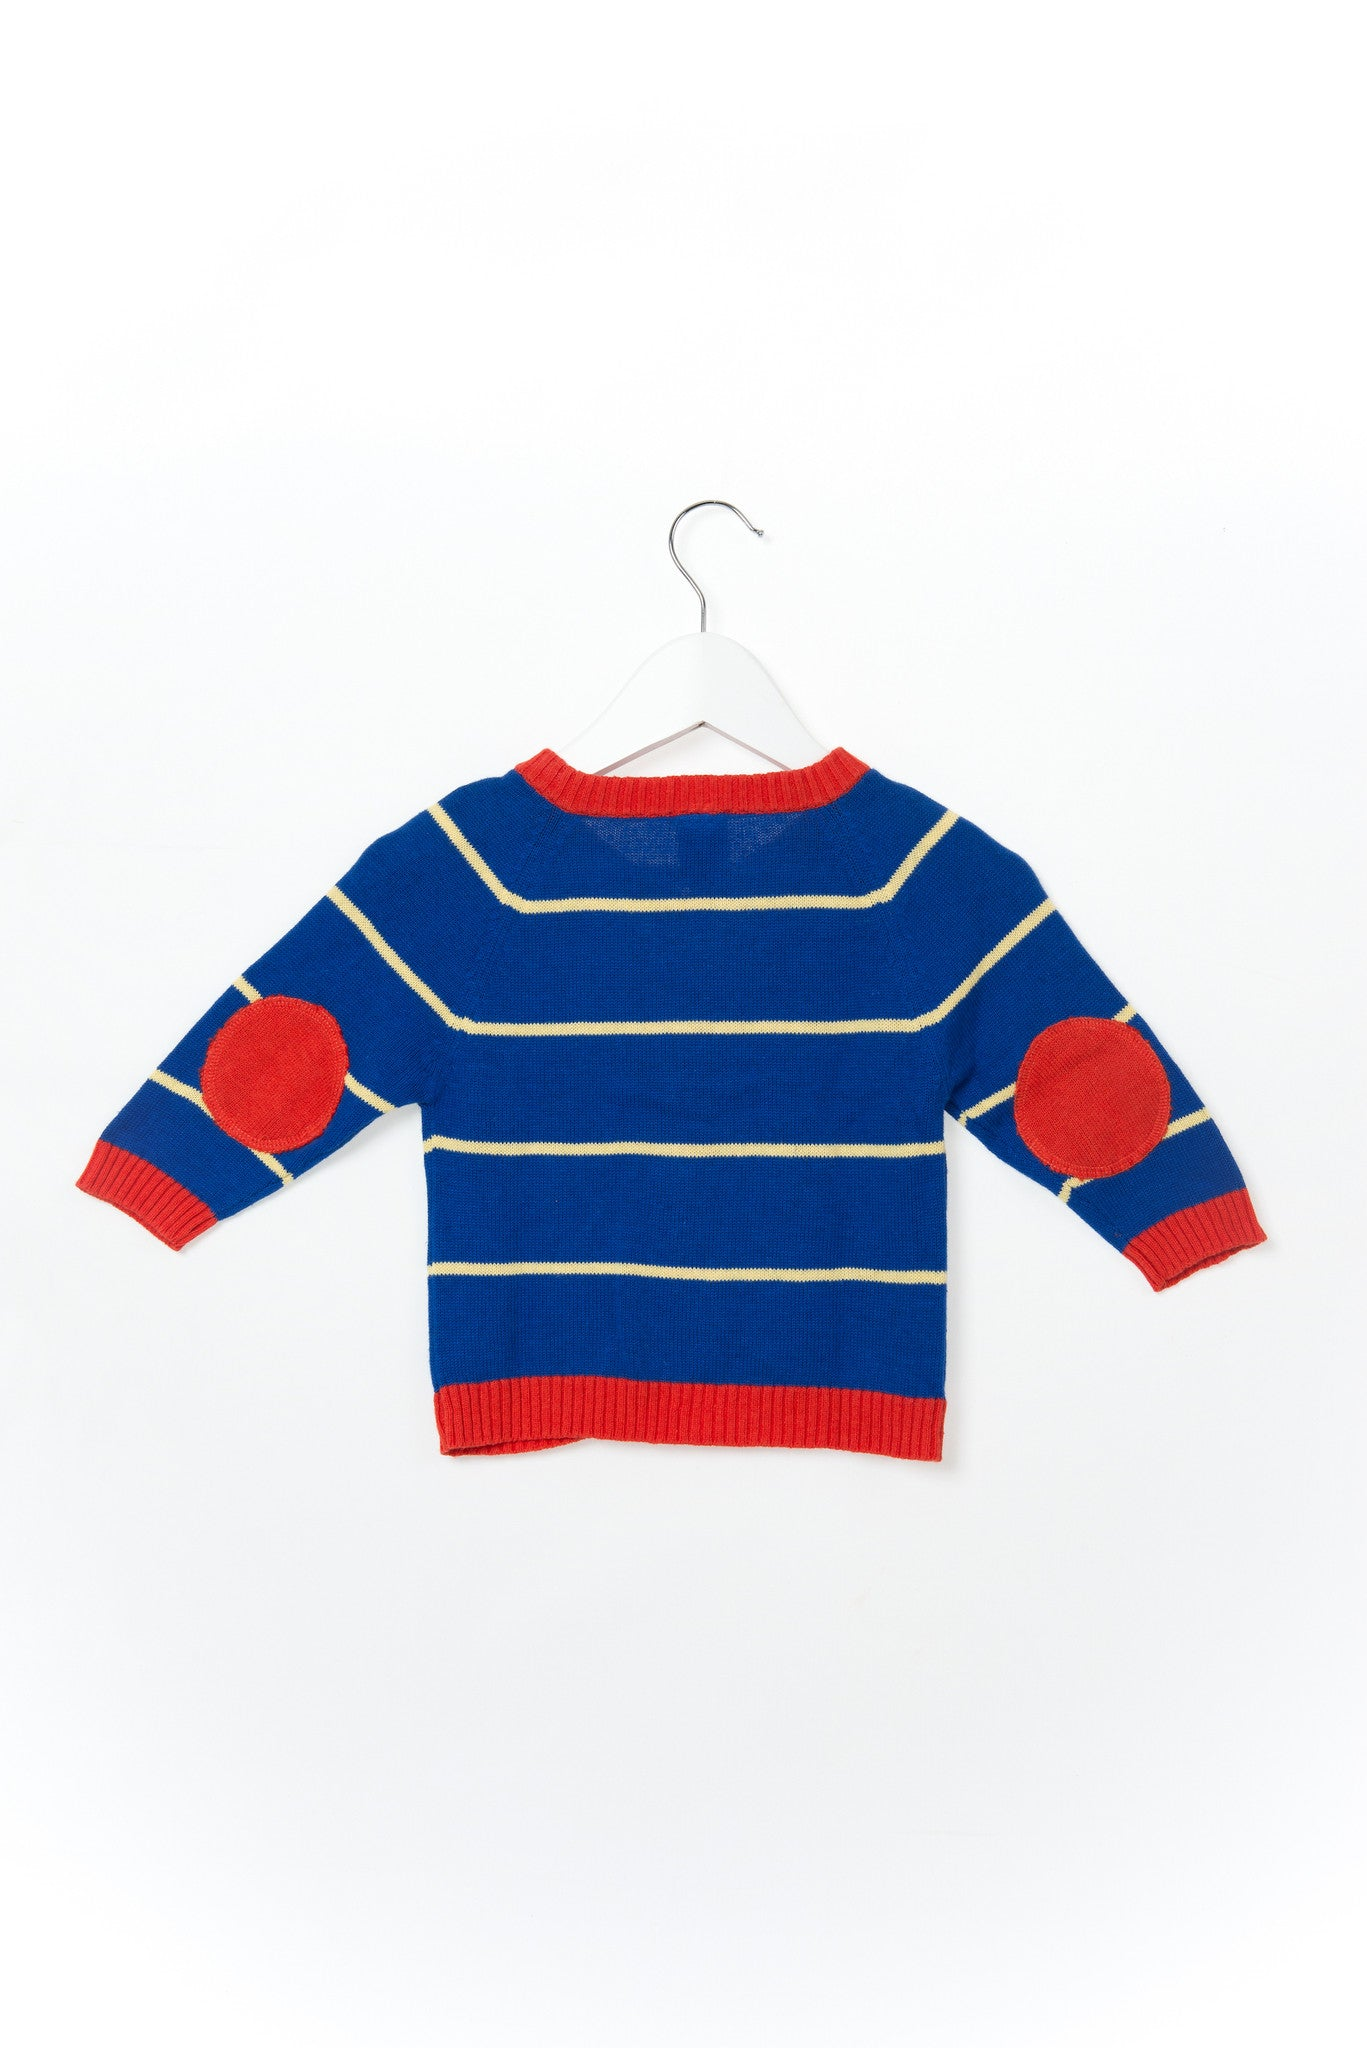 10001243 Katvig Kids~Cardigan 2T at Retykle